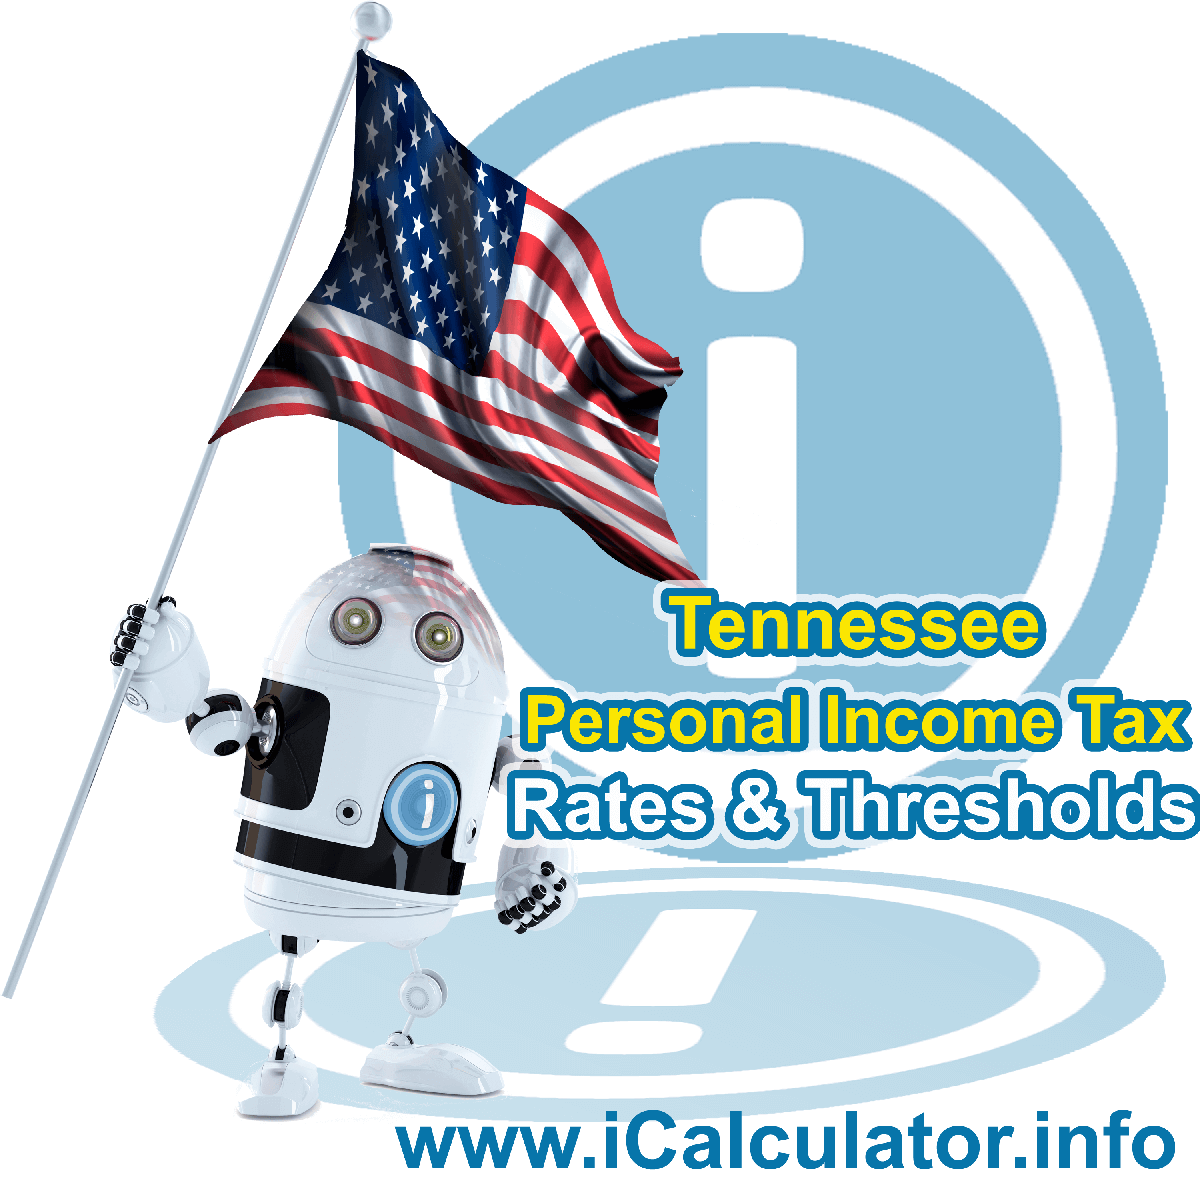 Tennessee State Tax Tables 2020. This image displays details of the Tennessee State Tax Tables for the 2020 tax return year which is provided in support of the 2020 US Tax Calculator